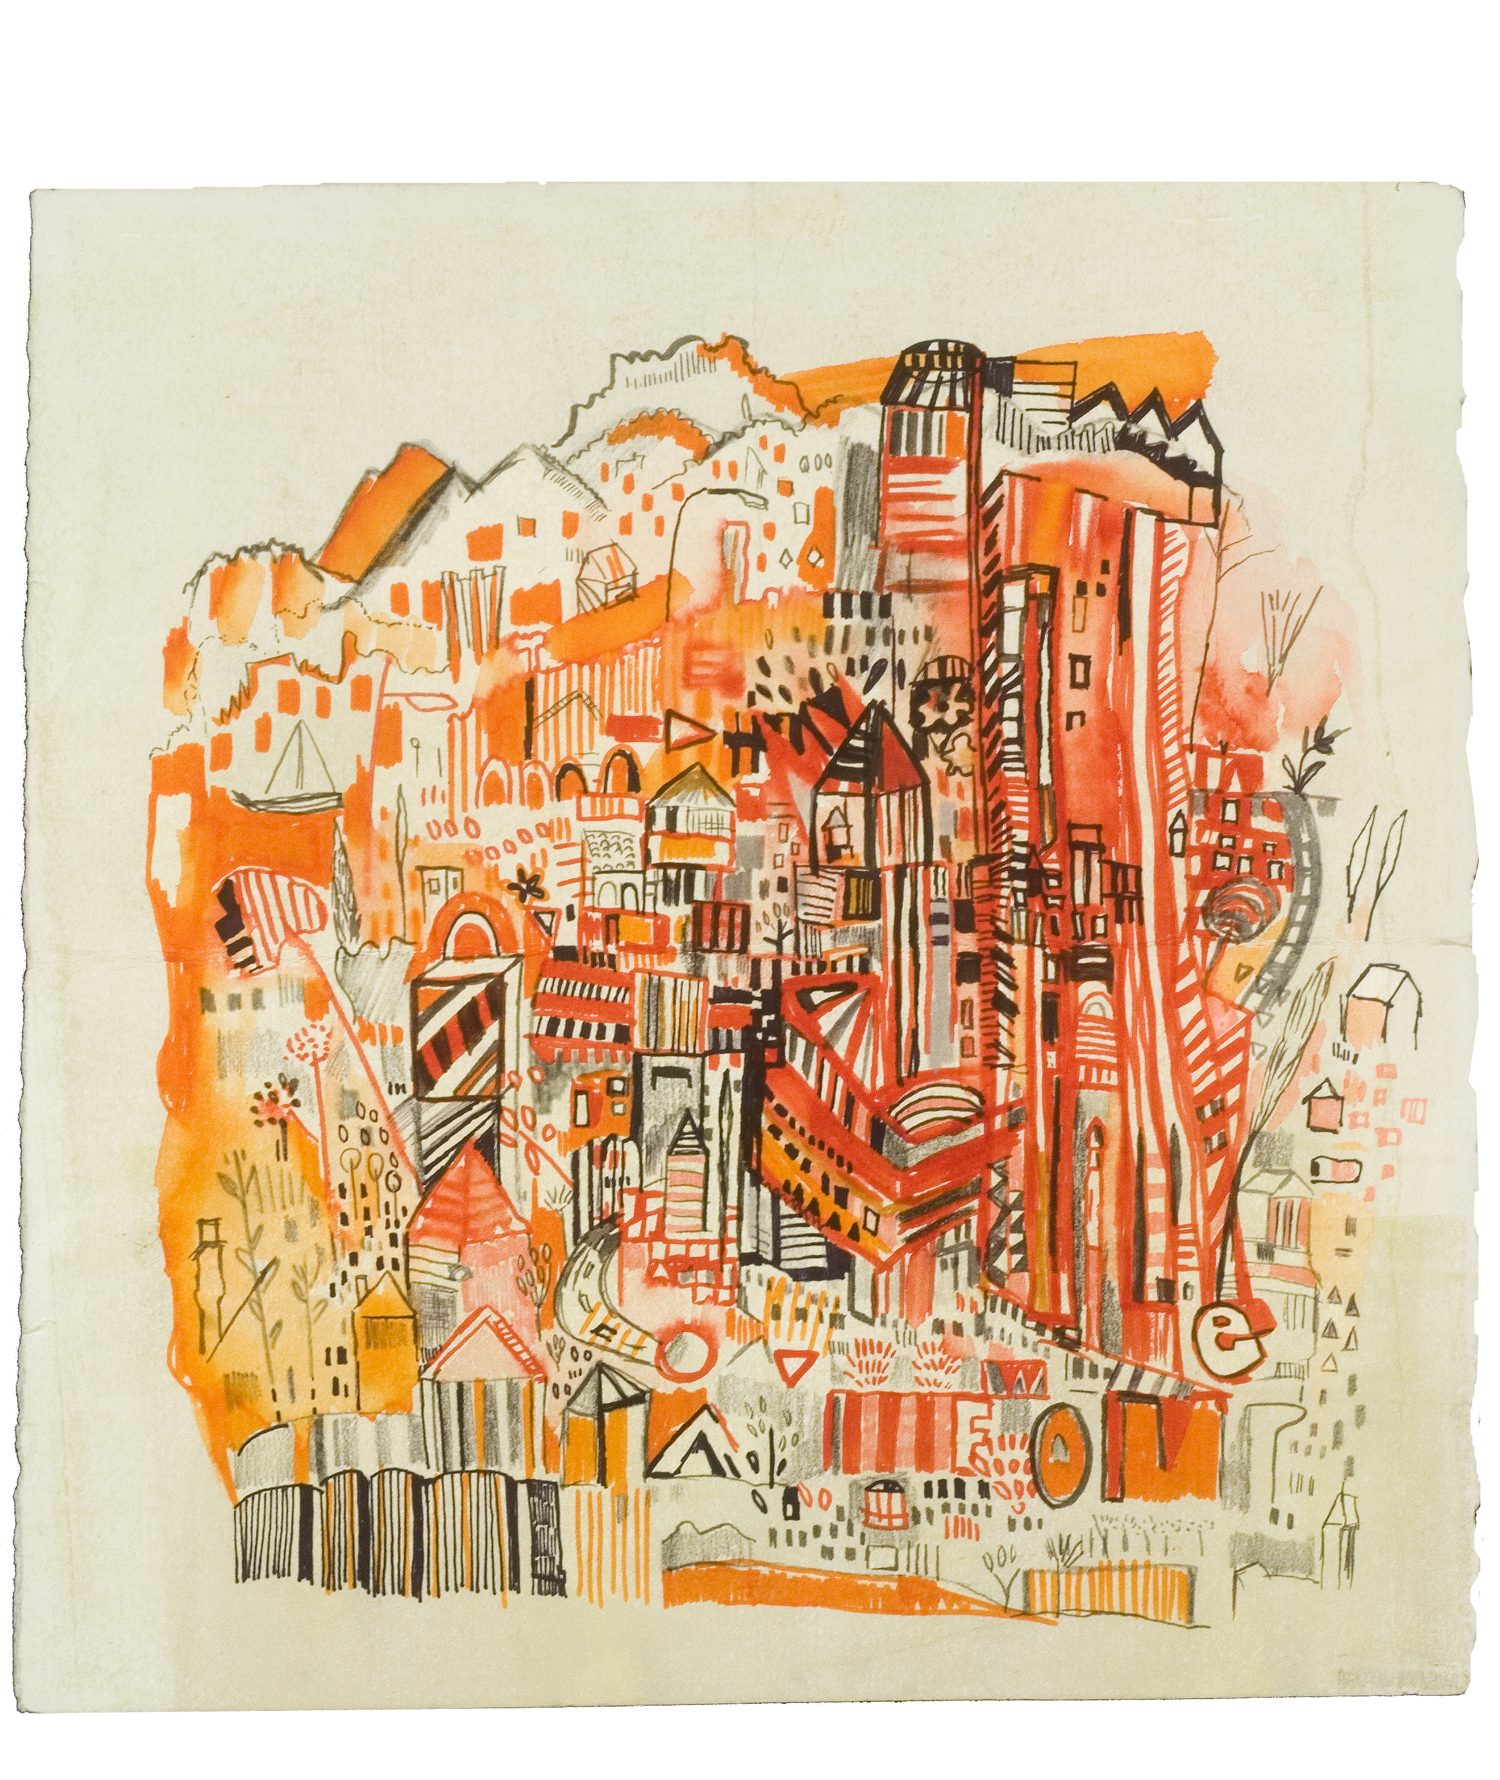 "orange and red hill 2 | pencil, marker, watercolor on paper | 12"" x 13"" 